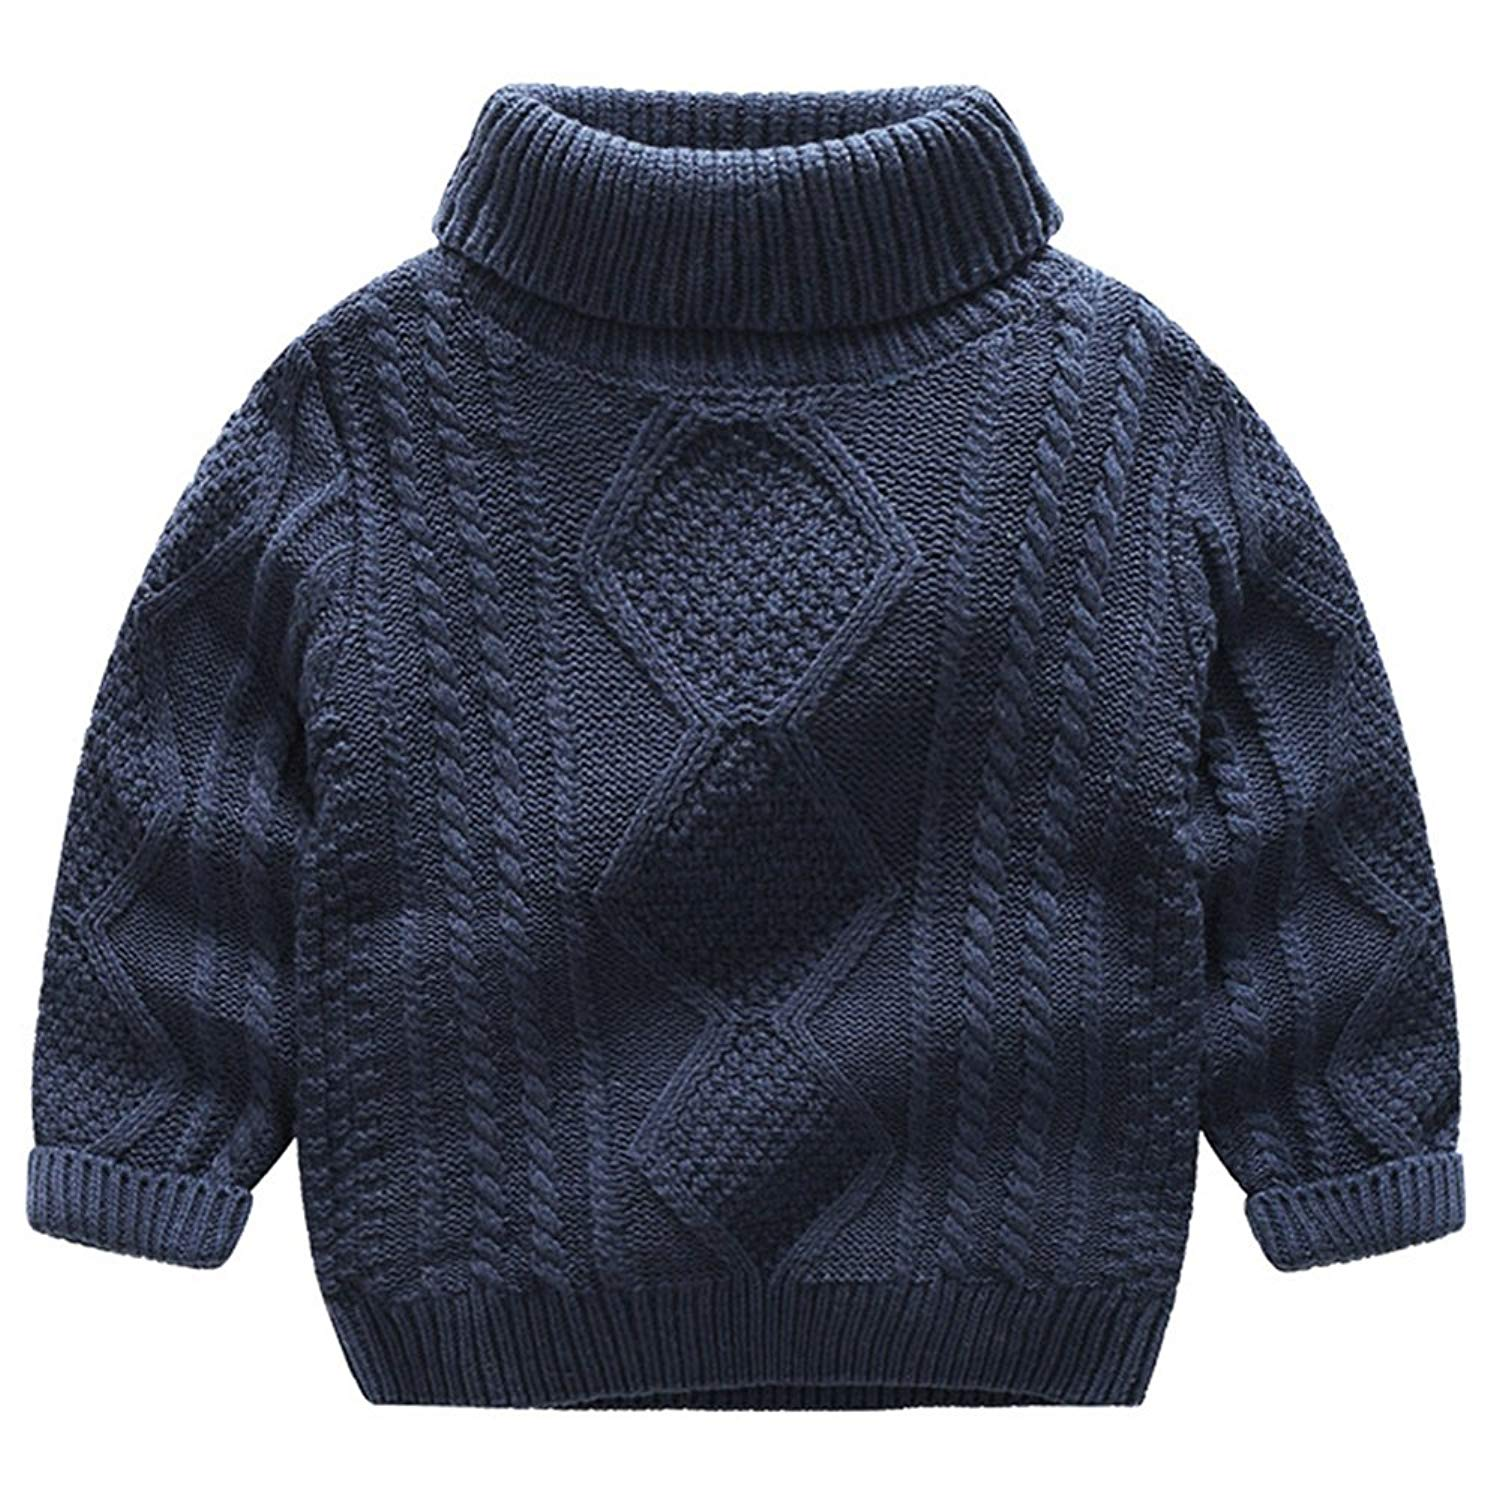 8ac5fd2290d3d7 Get Quotations · Baby Boy s Toddler Kids Child Vintage Twist Jacquard  Pattern Turtle Neck Ribbed Pullover Cable Knit Sweater